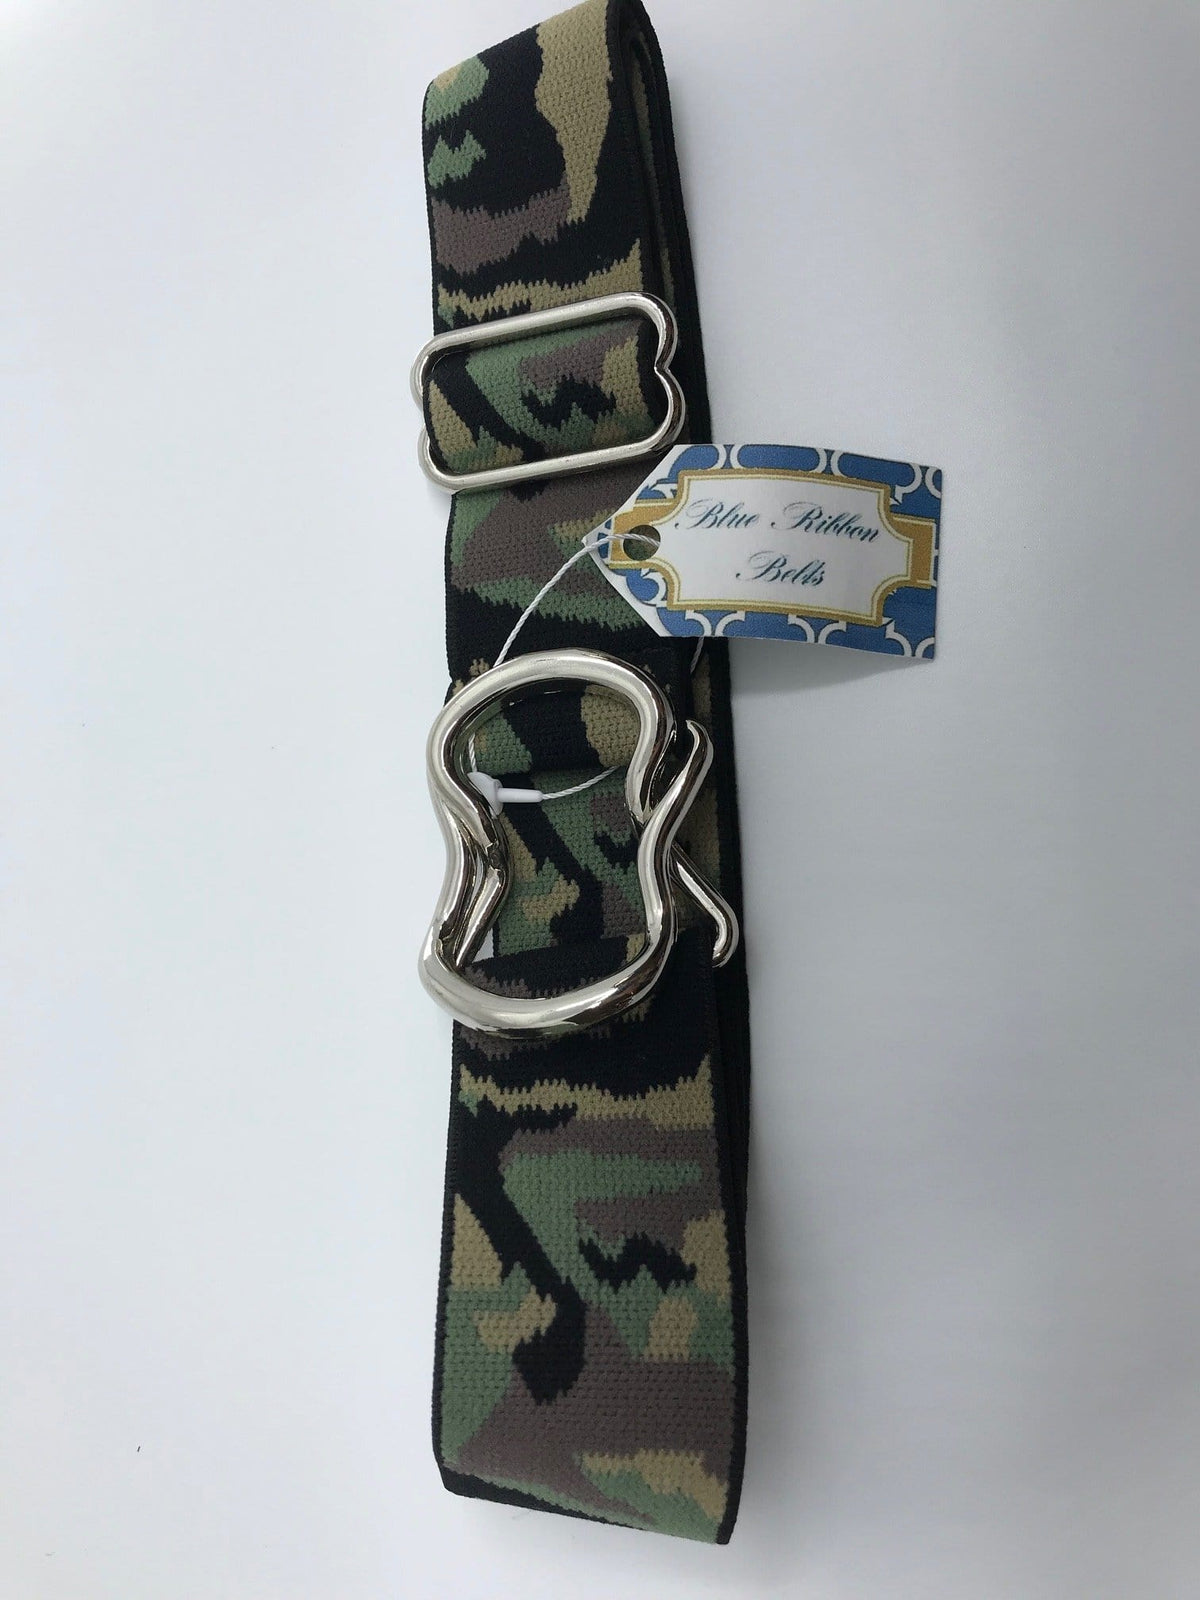 "Blue Ribbon Belts Belt Green Camo Blue Ribbon Belts 1.5"" equestrian team apparel online tack store mobile tack store custom farm apparel custom show stable clothing equestrian lifestyle horse show clothing riding clothes horses equestrian tack store"